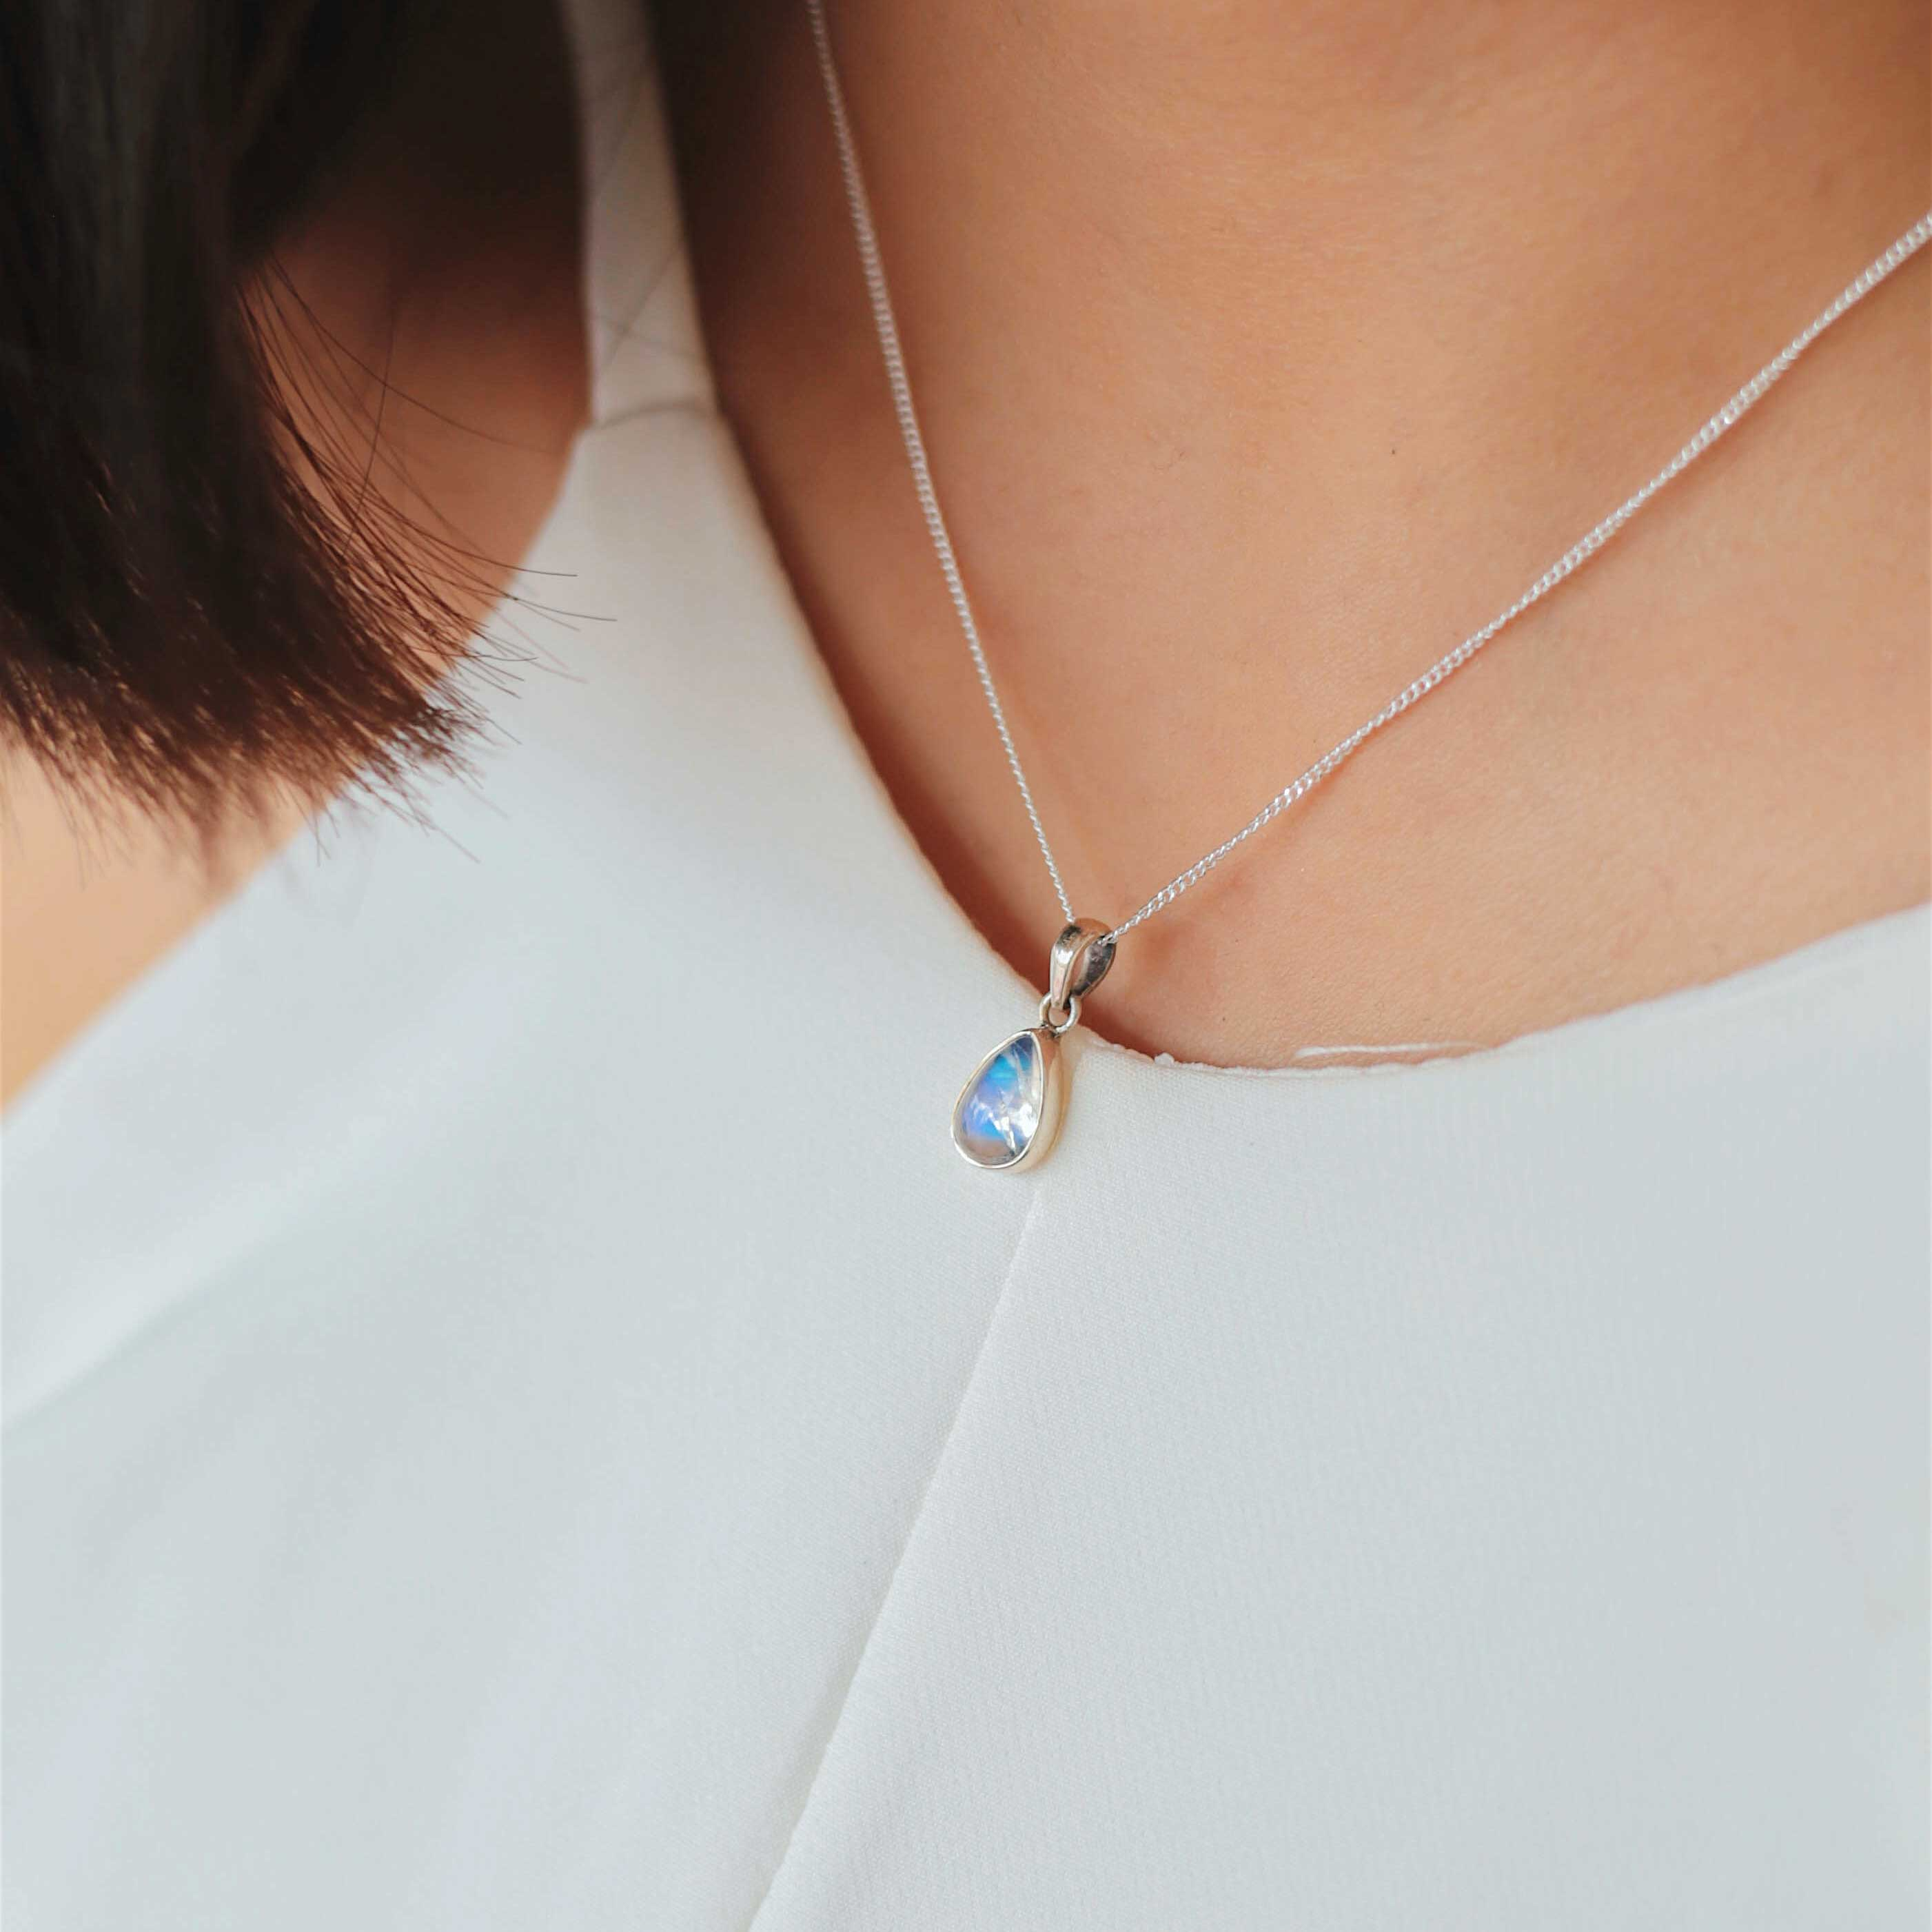 plated product popular necklace brand gold italina collier chain diamond pendant thin clavicle cz